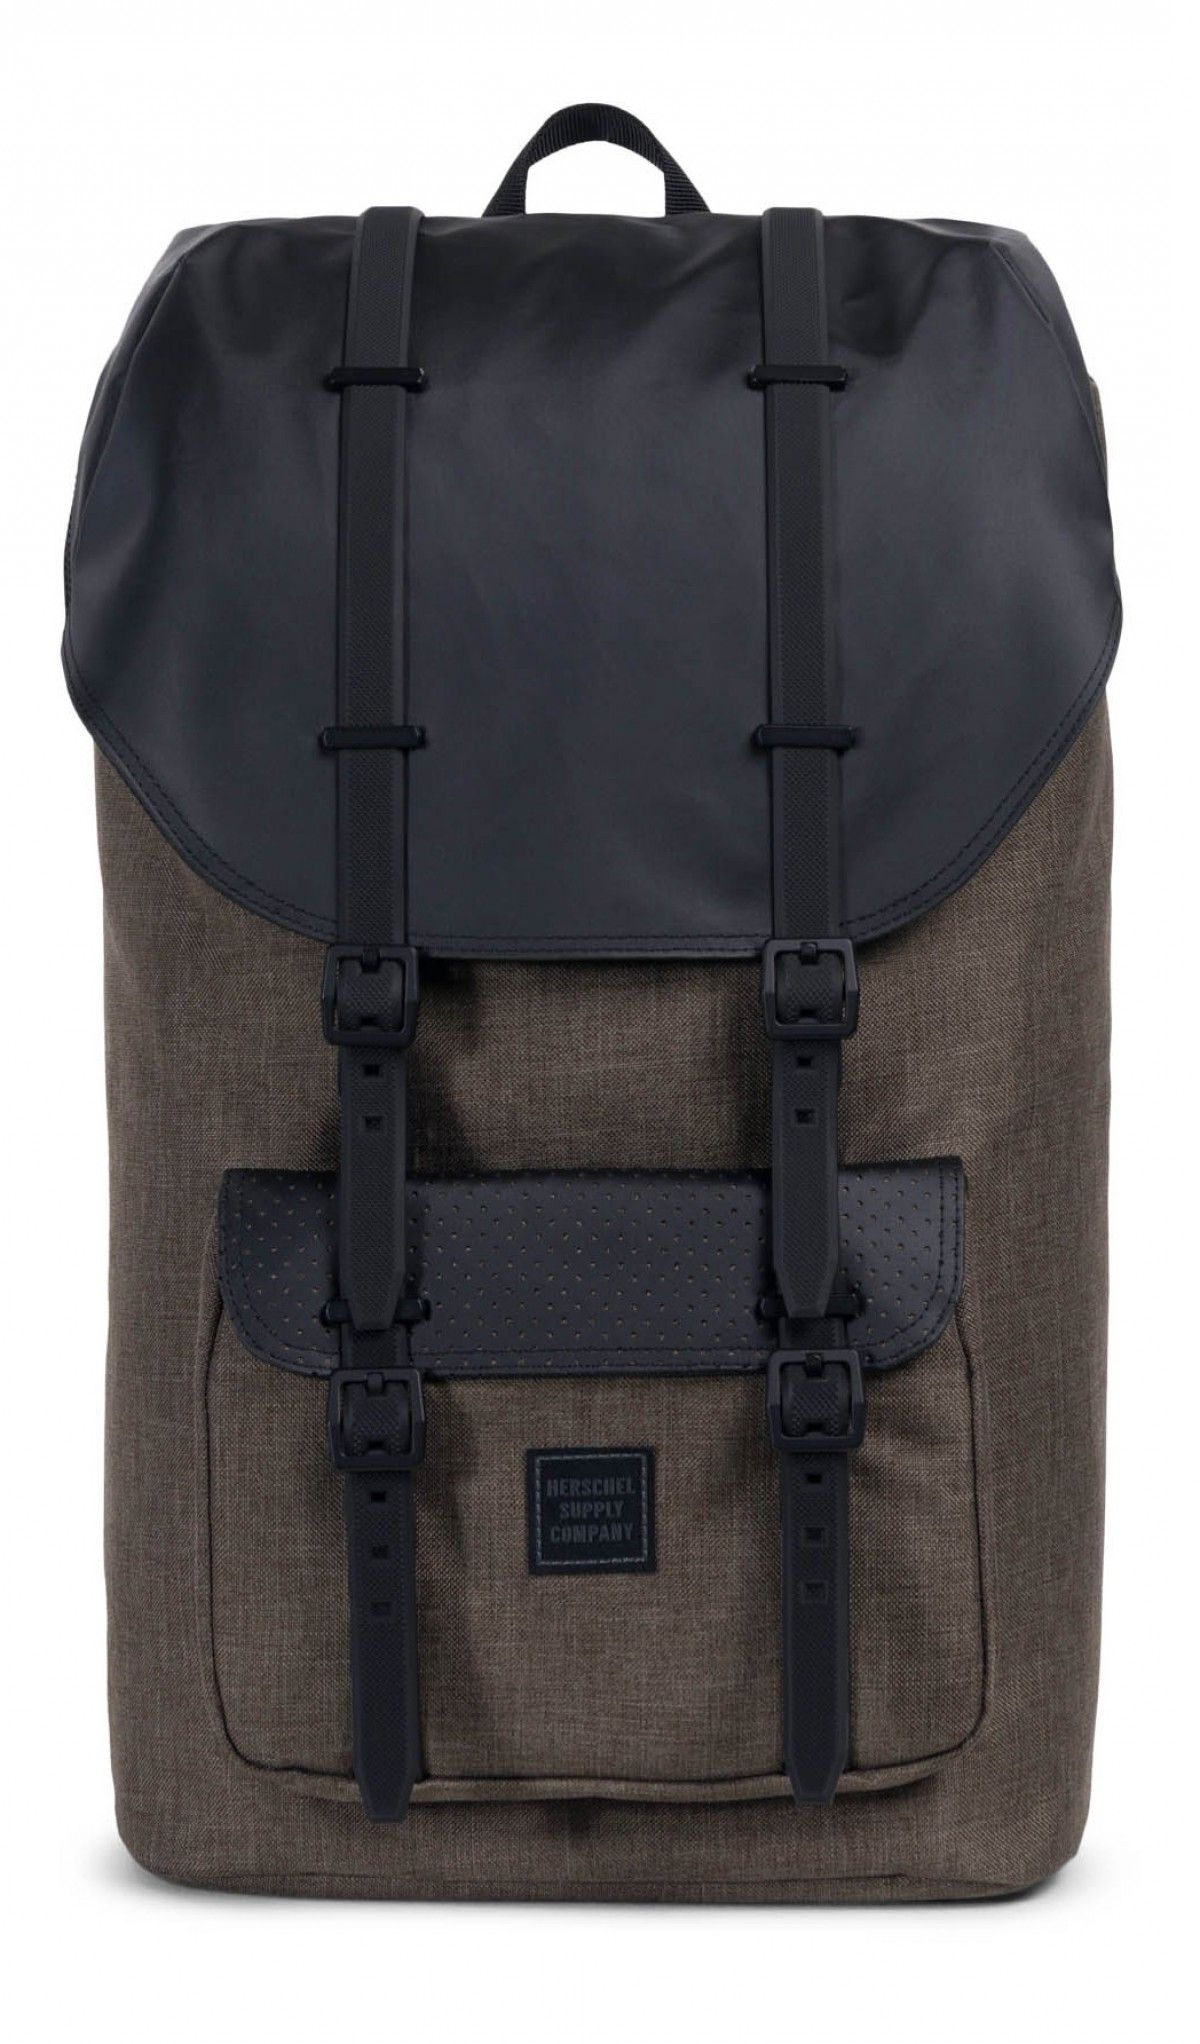 31dc453a4 Herschel Little America Backpack Aspect Canteen Crosshatch/Black ...